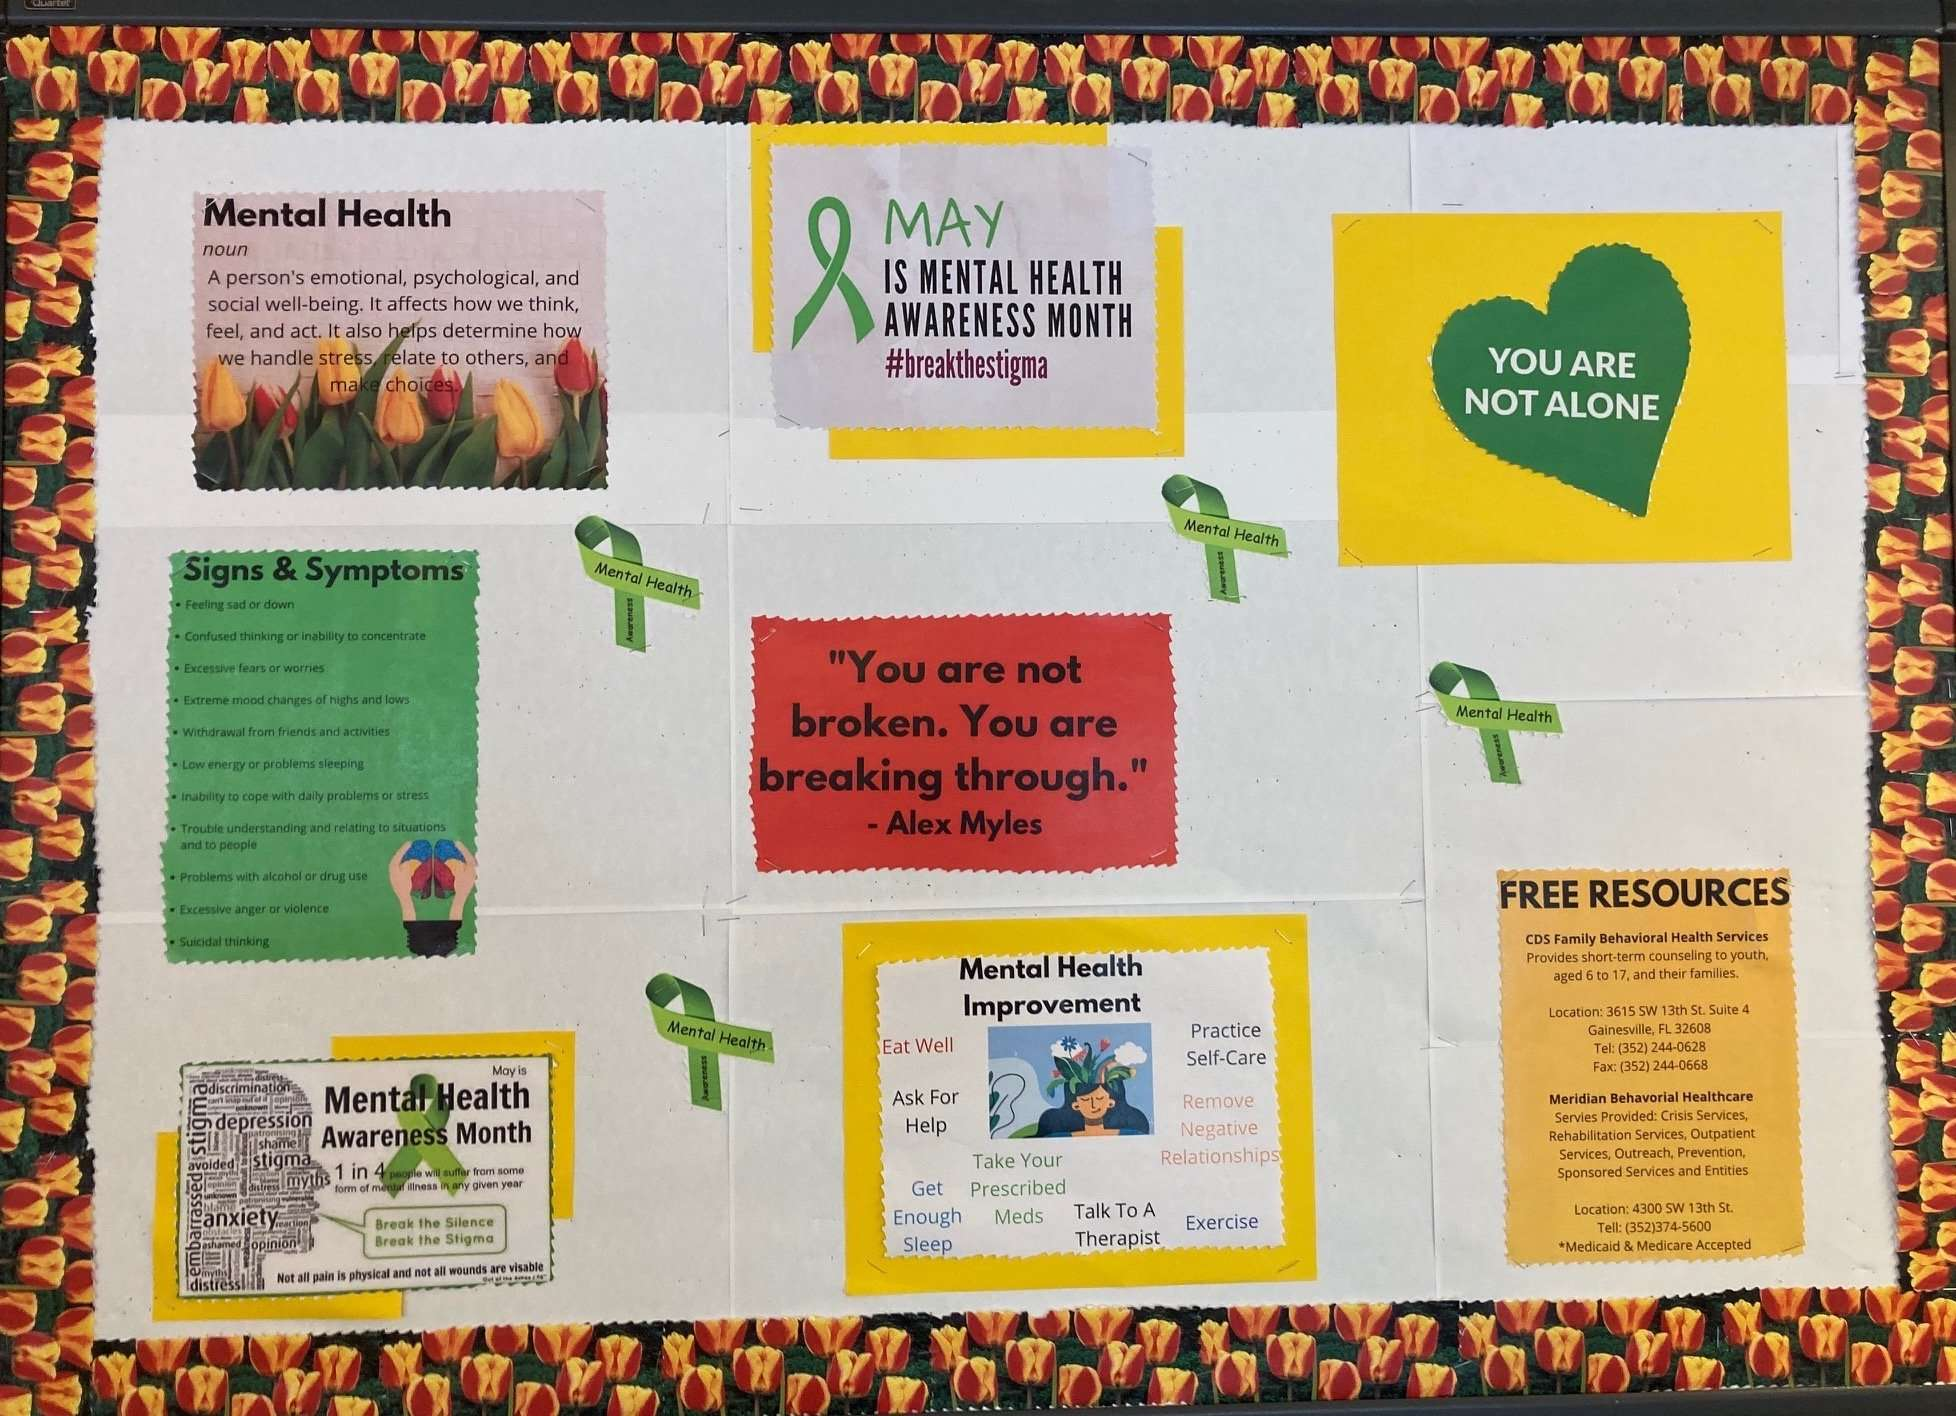 The May 2021 Community Bulletin Board, dedicated to Mental Health Awareness Month